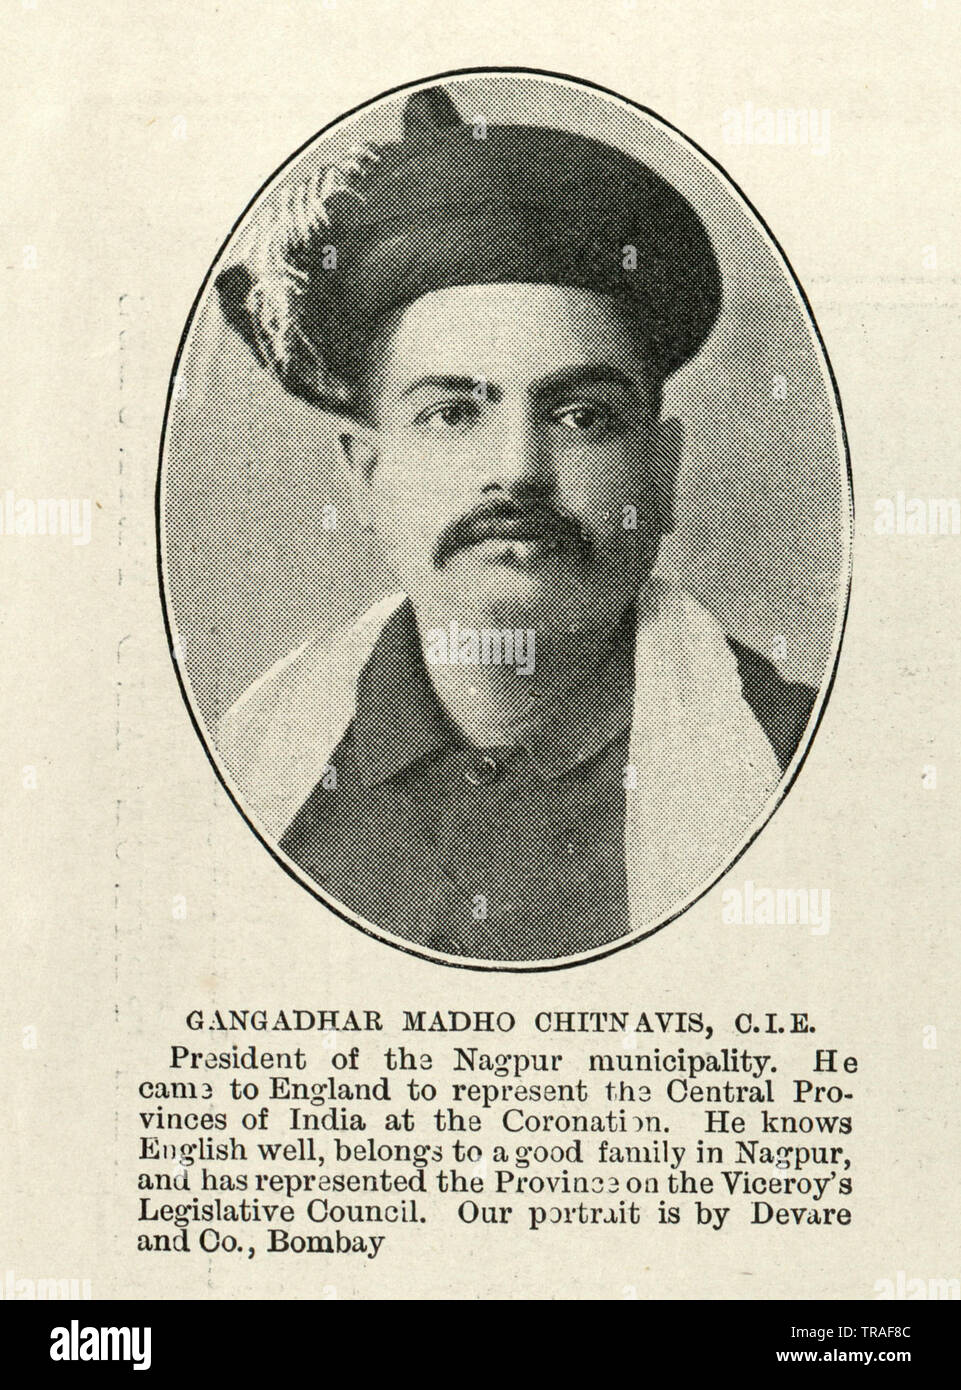 Vintage photograph of Gangadhar Rao Chitnavis, an Indian landholder and politician in the Central Provinces, British India. , 1902 Stock Photo